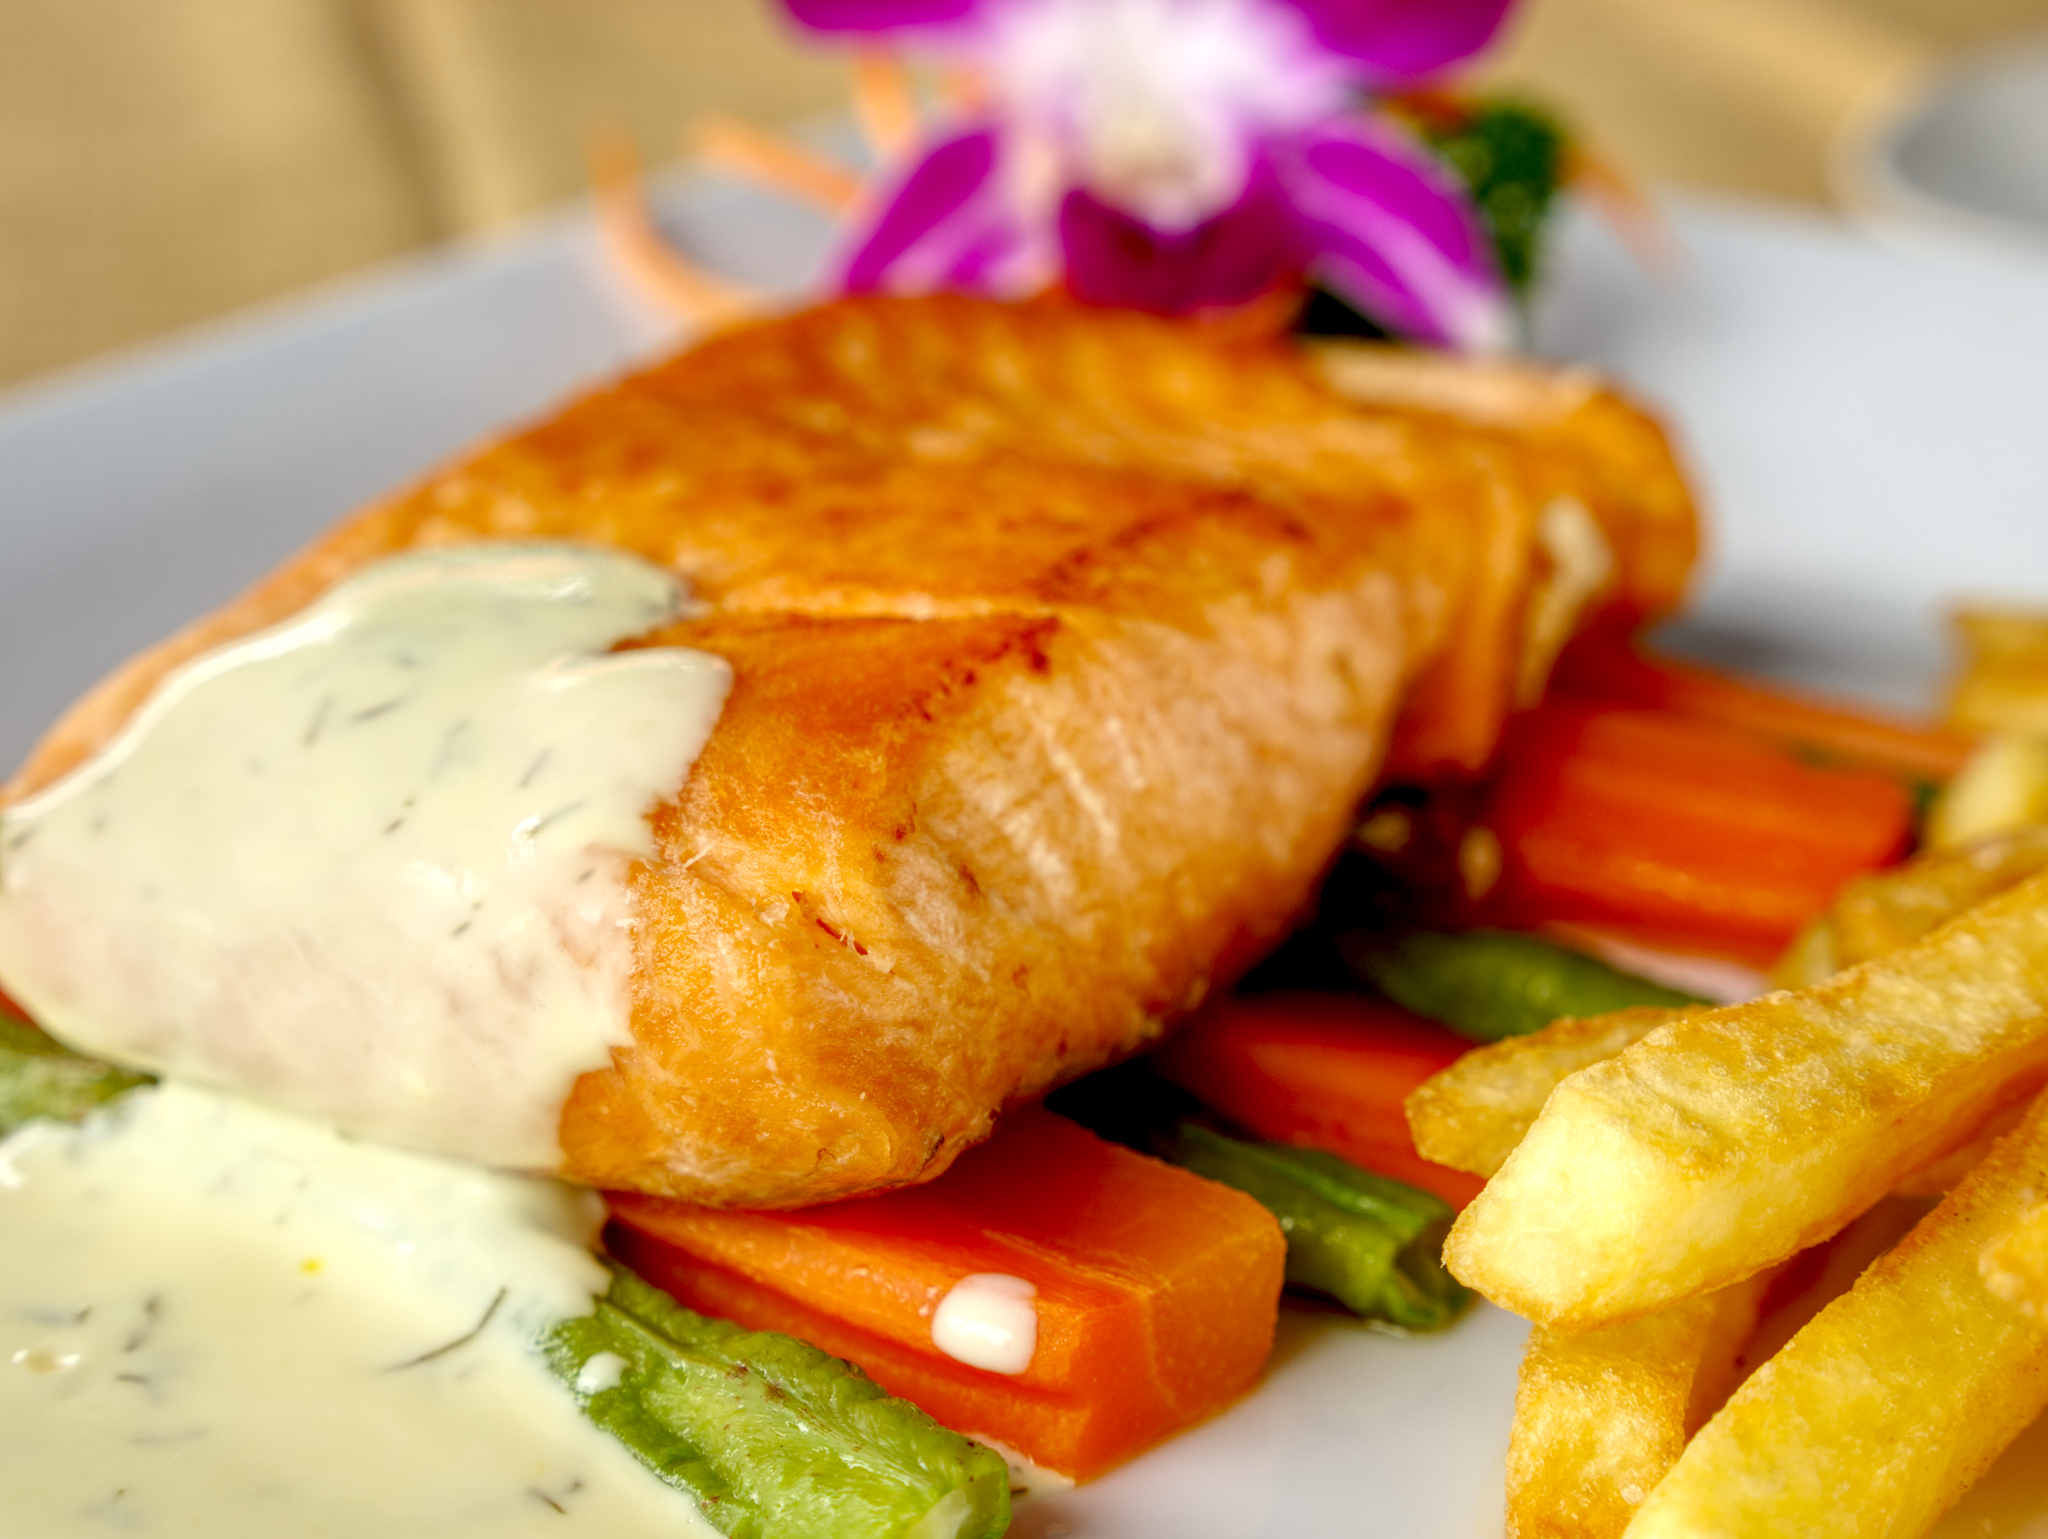 photograph of pan fried salmon steak with vegetables and french fries